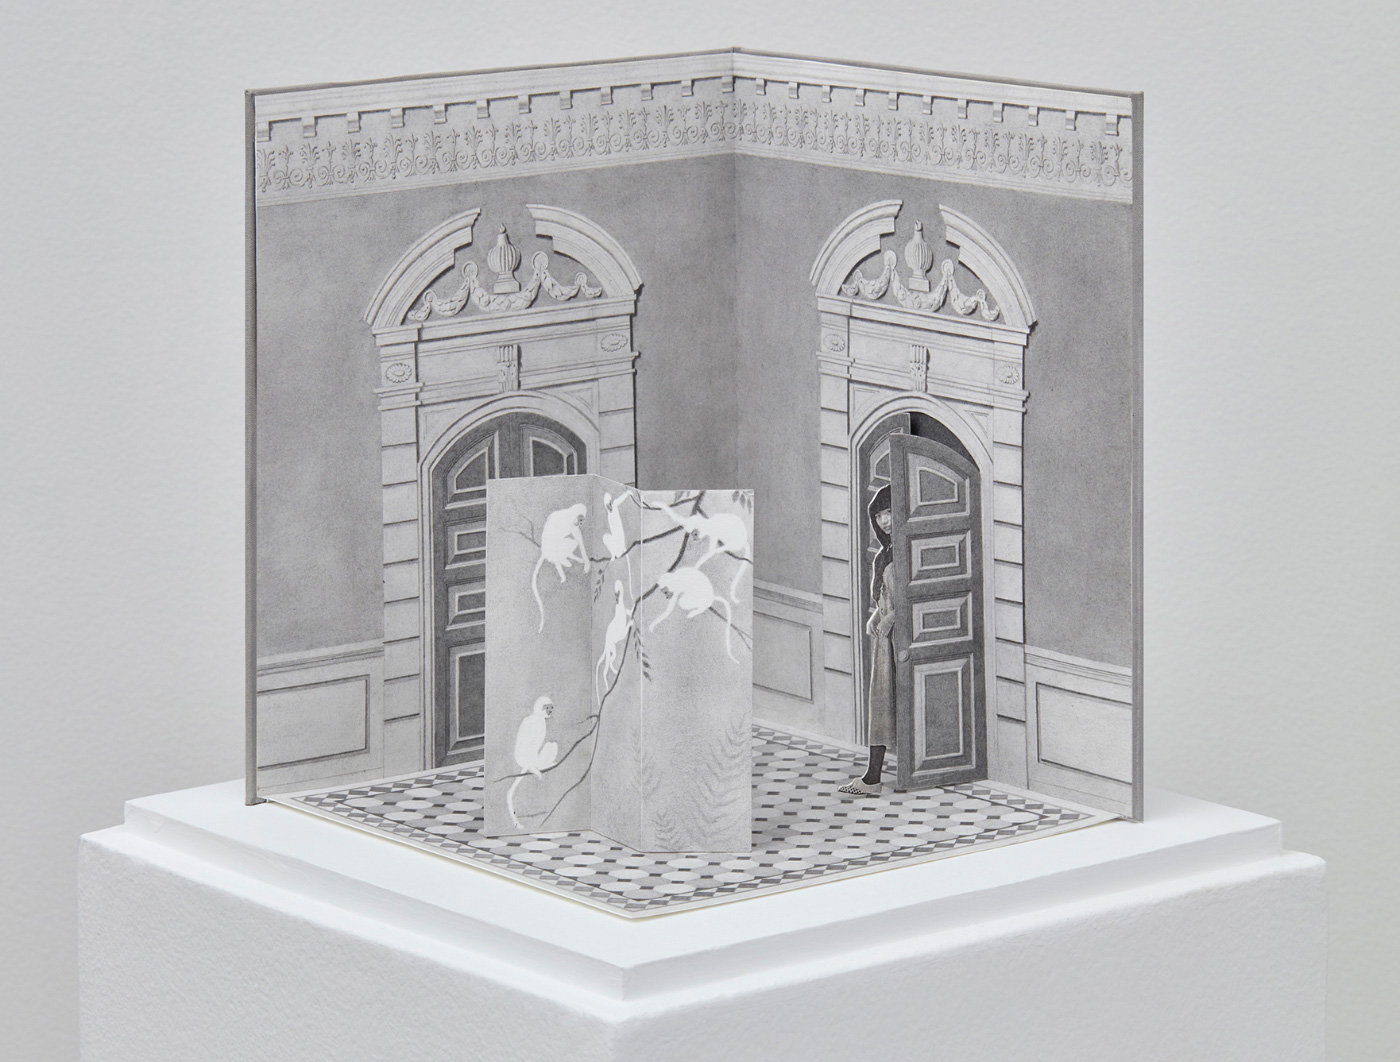 Greyscale drawing of a museum gallery with a woman loitering